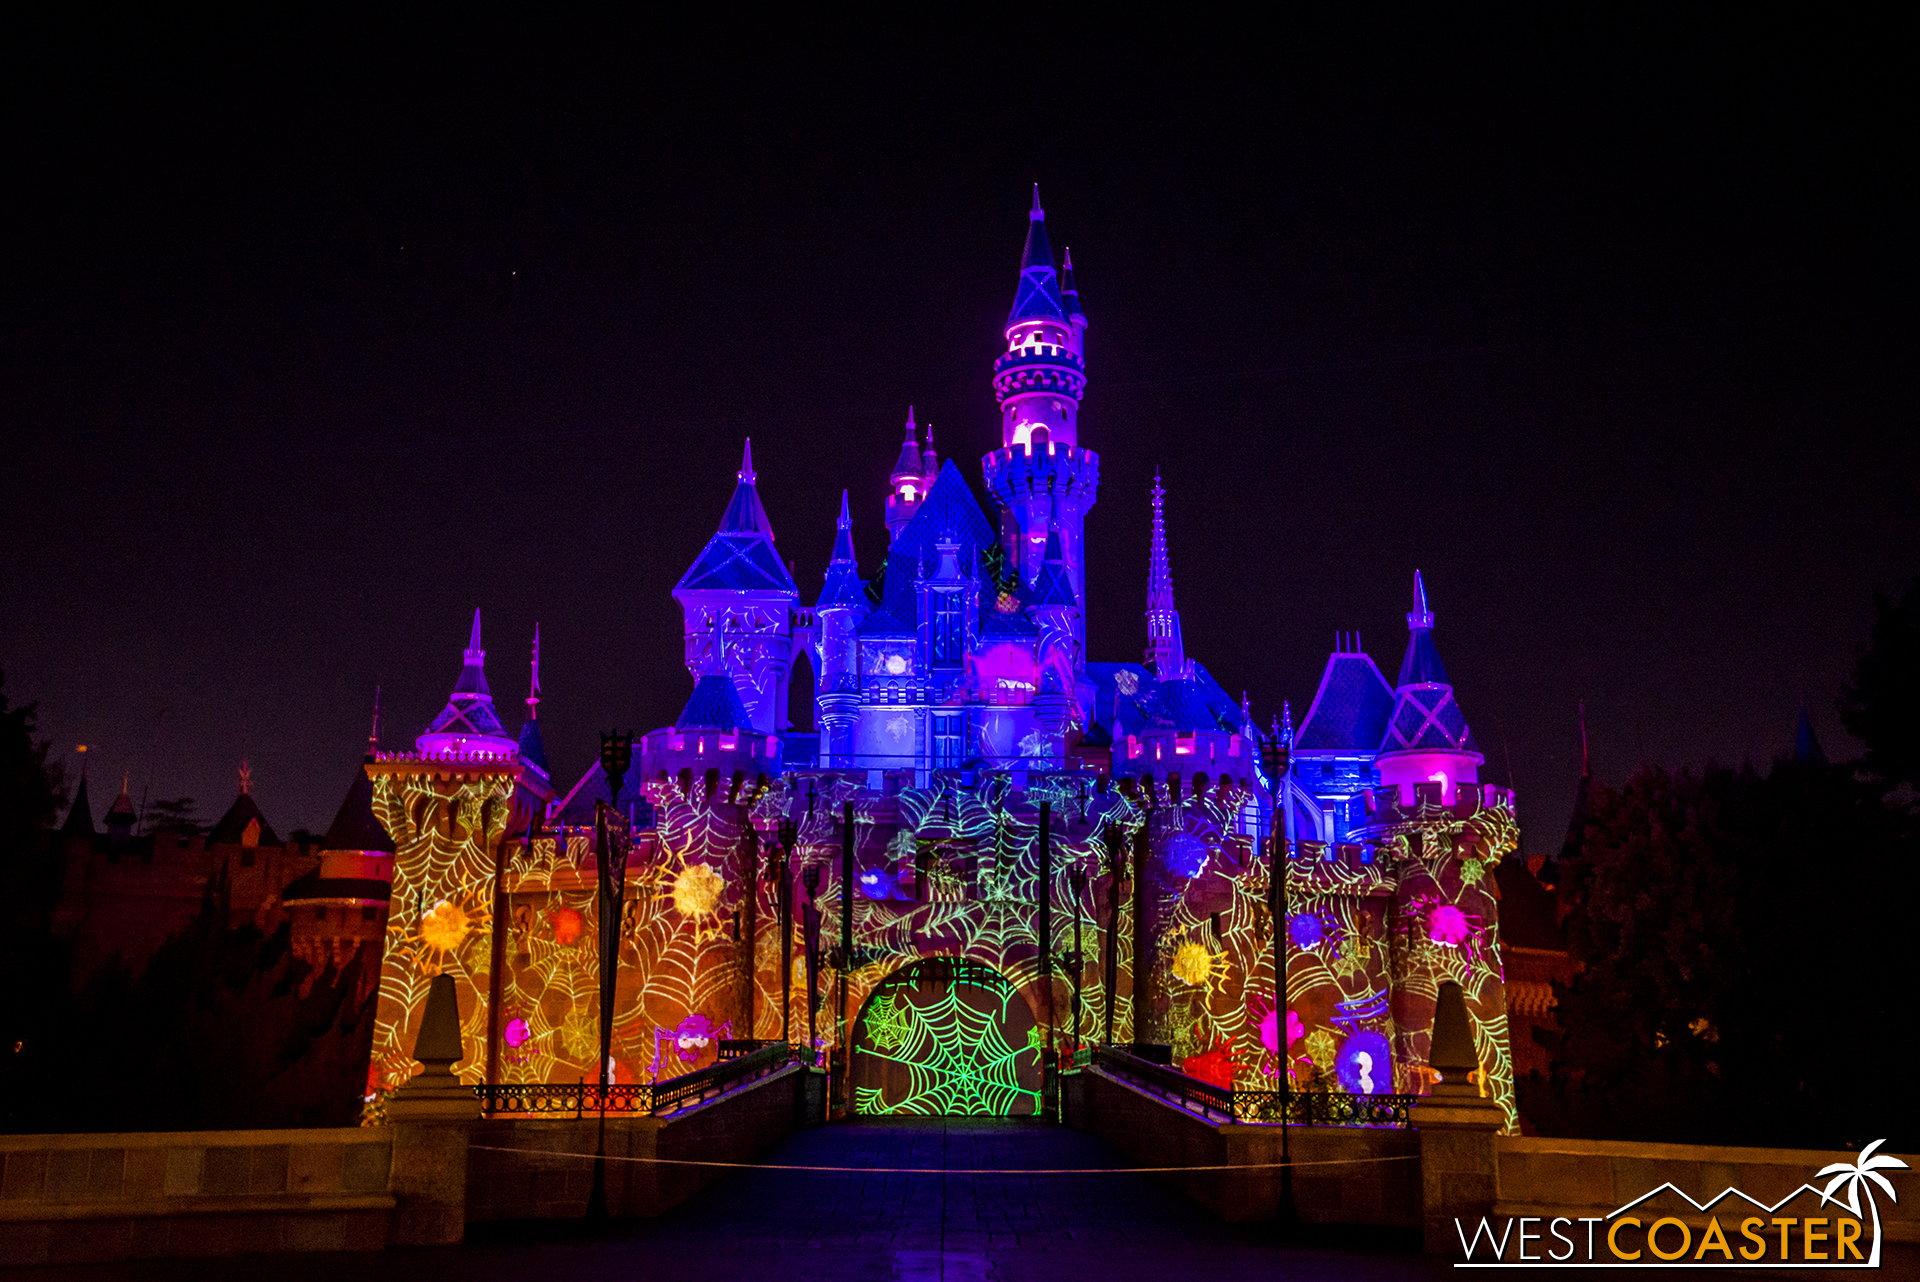 Just as projections shine on the Main Street facades throughout the night, so do they project on Sleeping Beauty Castle too.